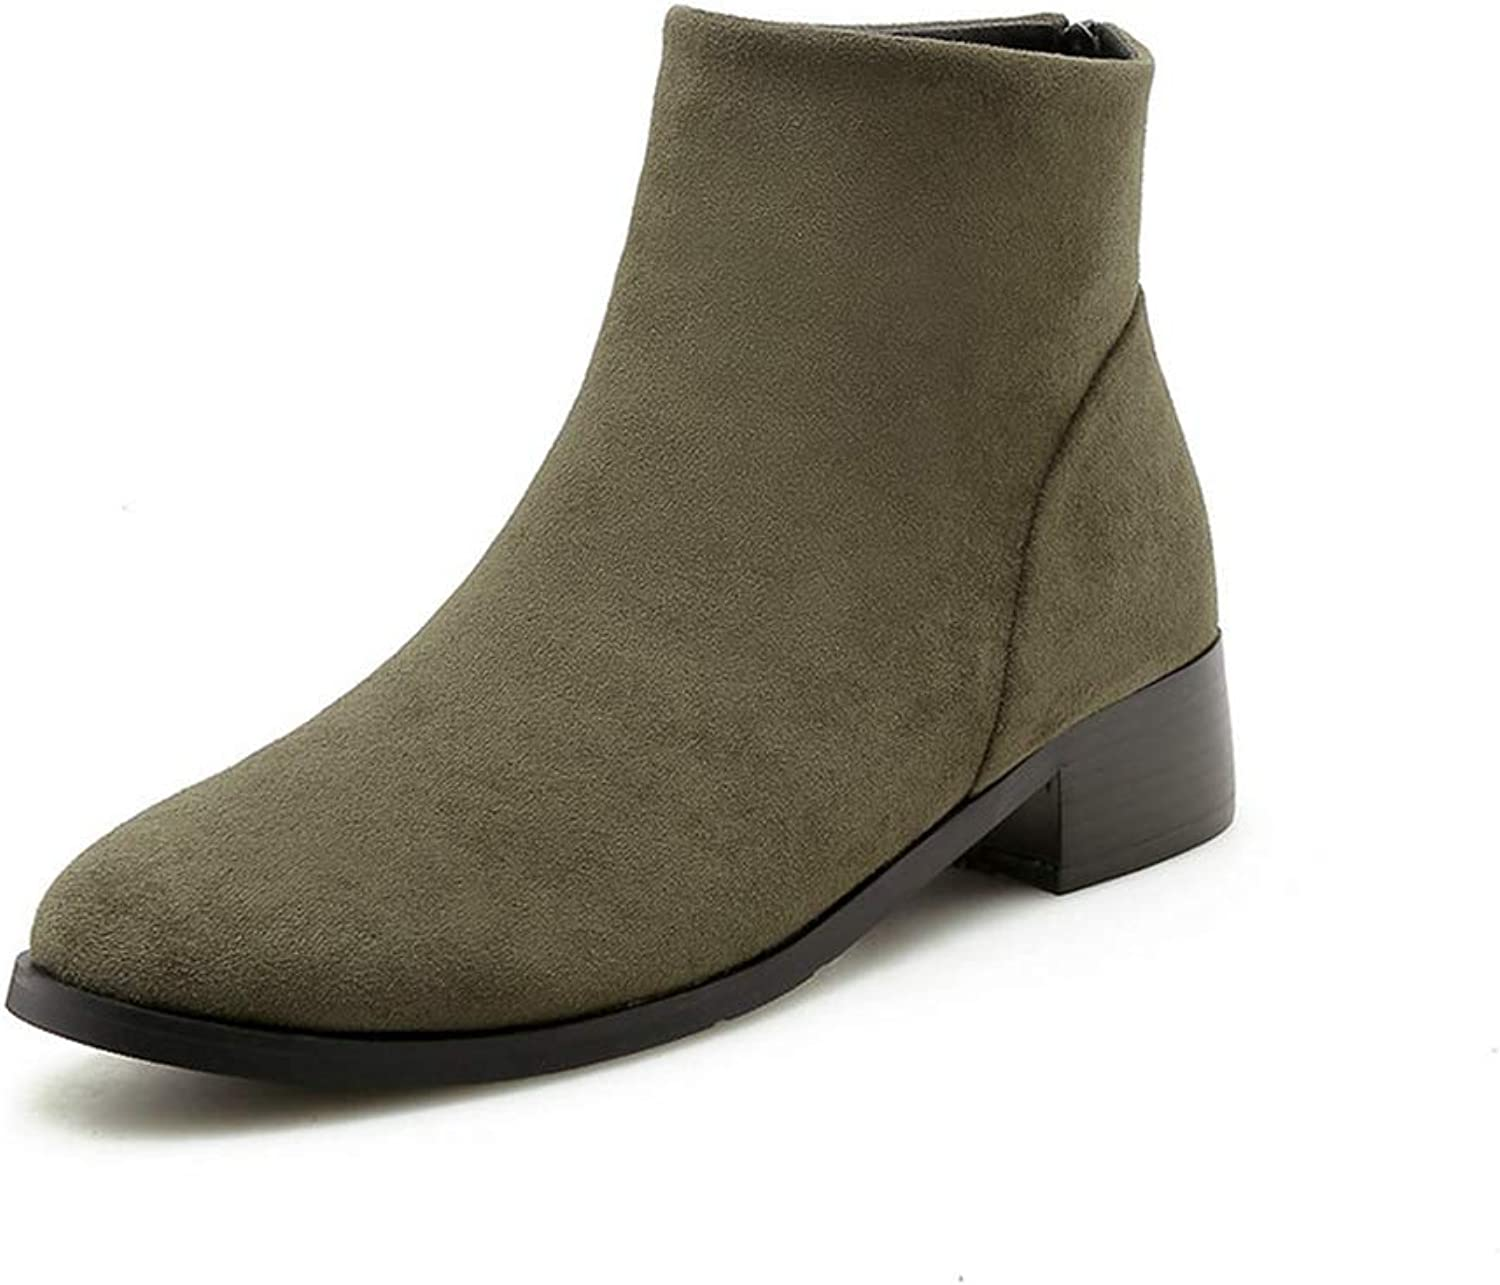 T-JULY New Winter Ankle Boots Women Square High Heels shoes Female Fashion Zip Short Plush Round Toe Boots